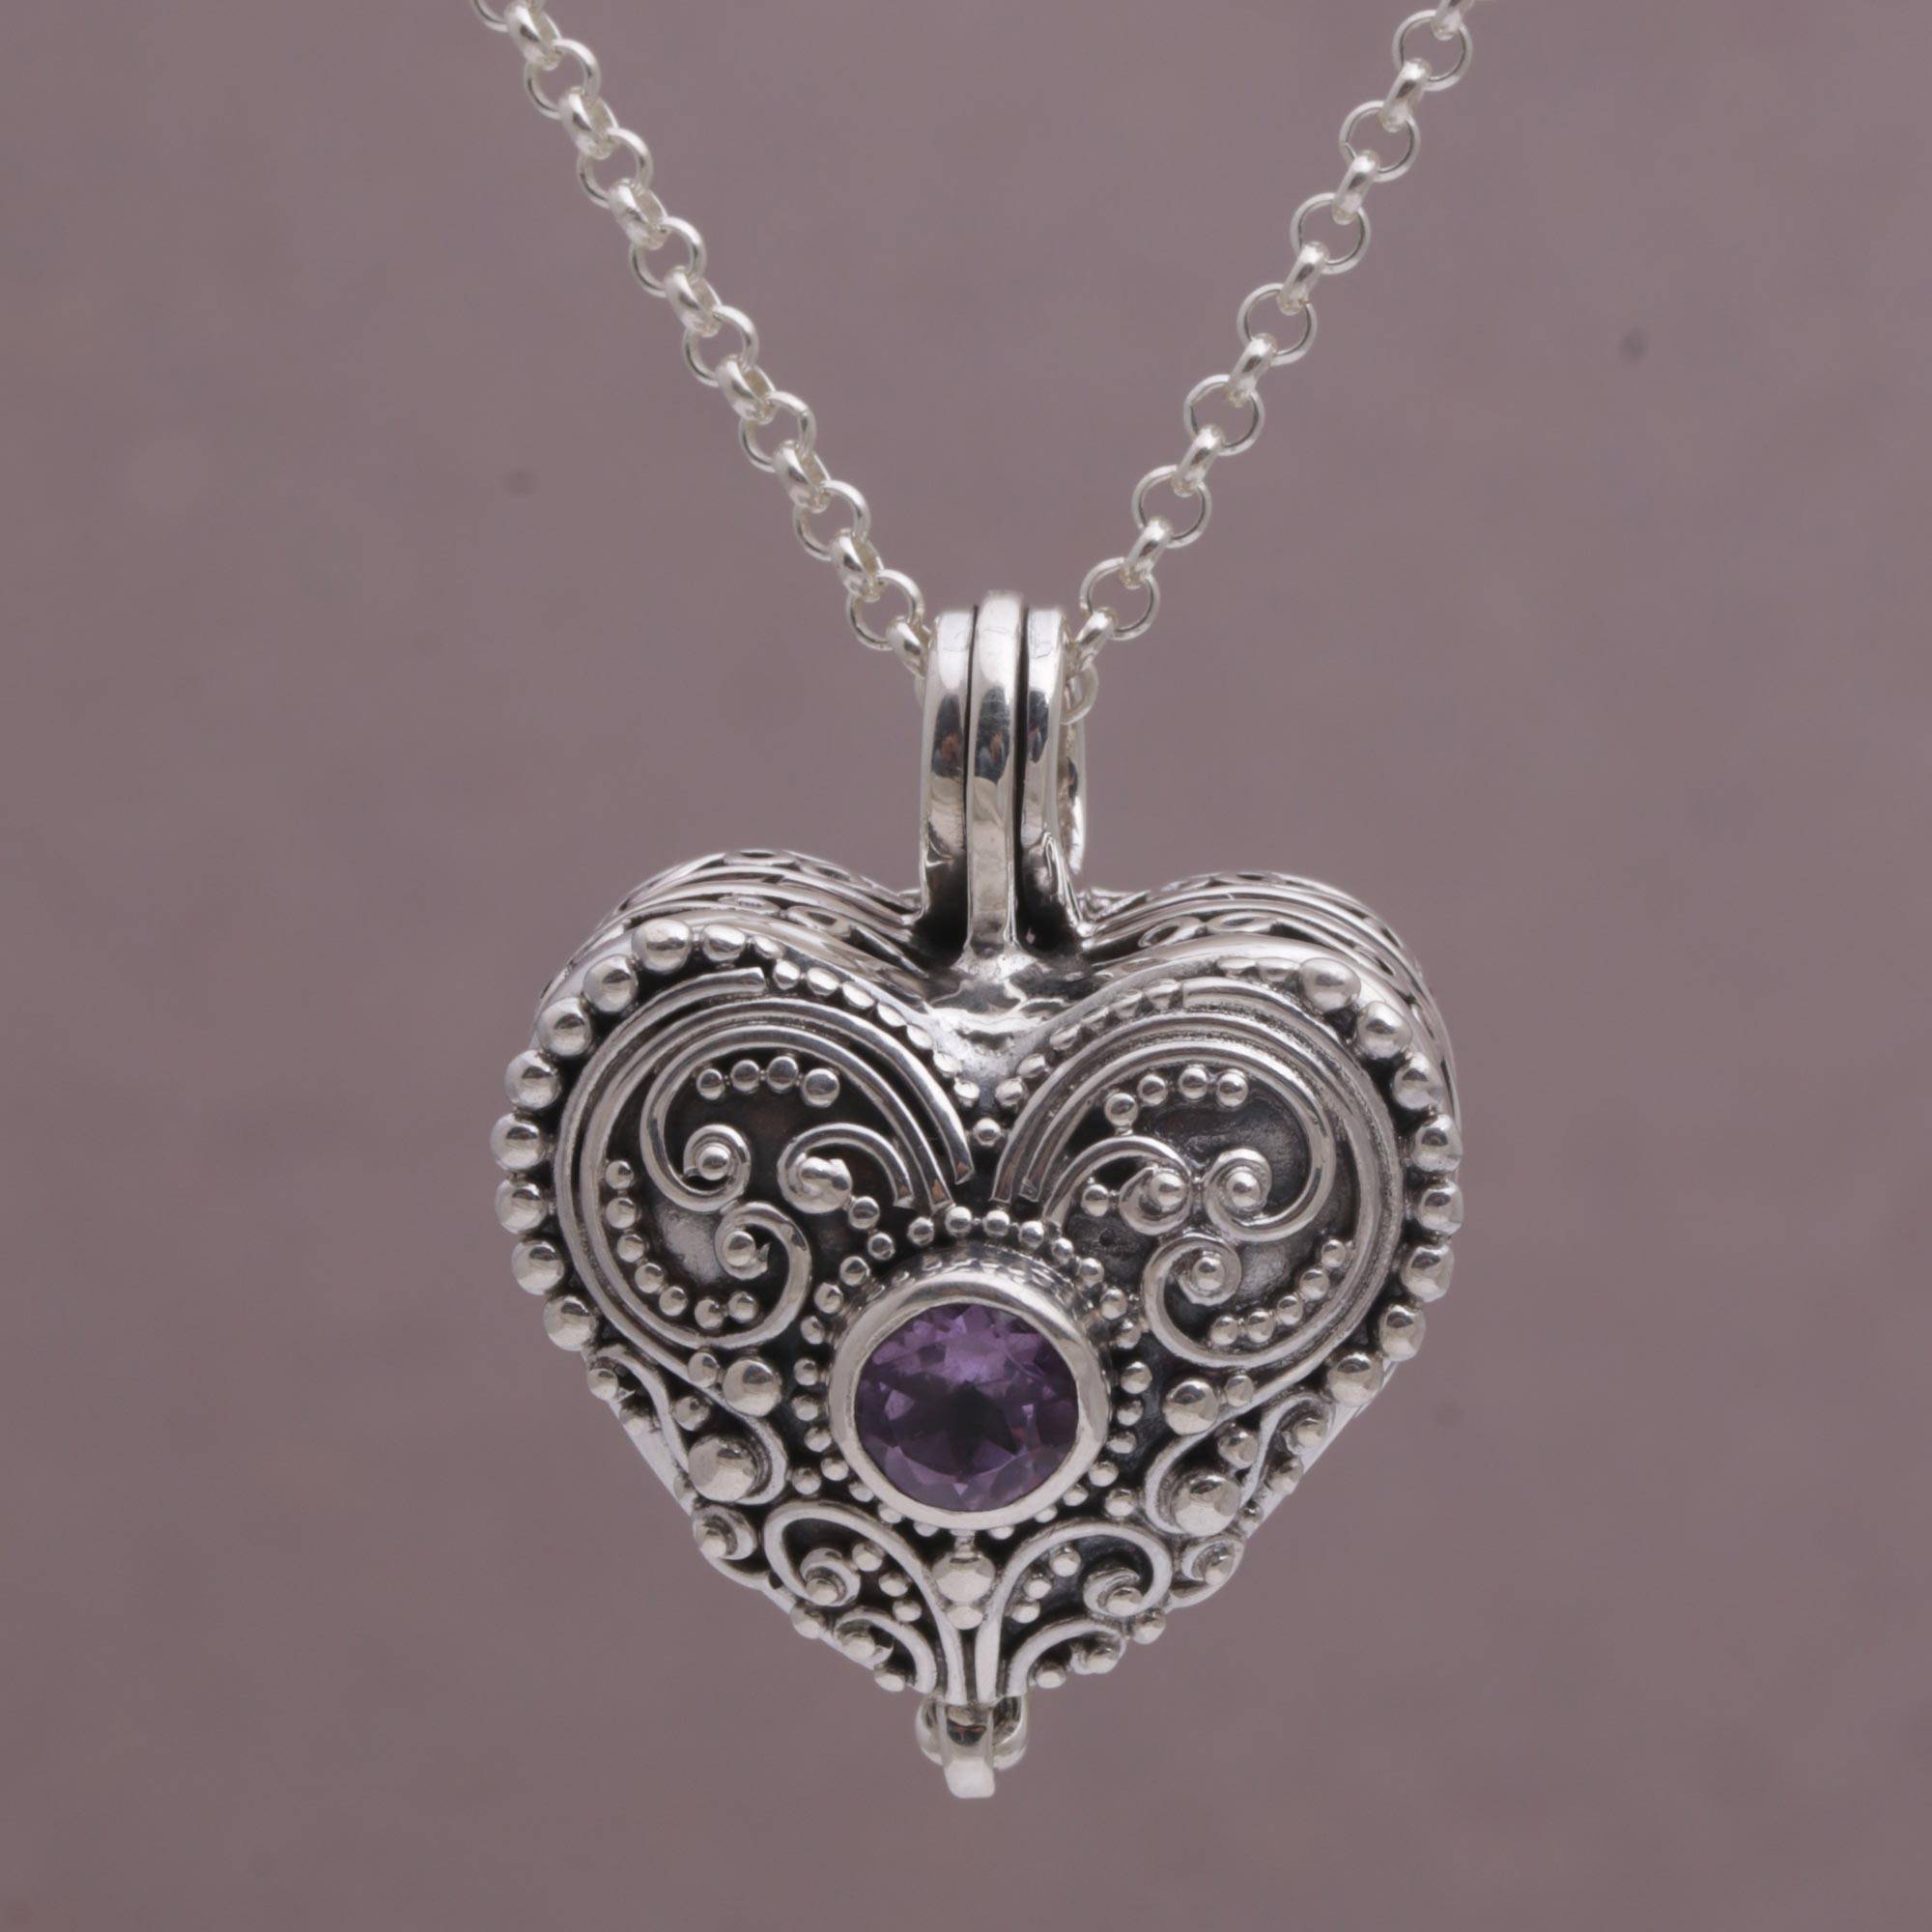 Heart Shaped Sterling Silver And Amethyst Locket Necklace, 'love Memento' Regarding Latest Purple February Birthstone Locket Element Necklaces (View 16 of 25)